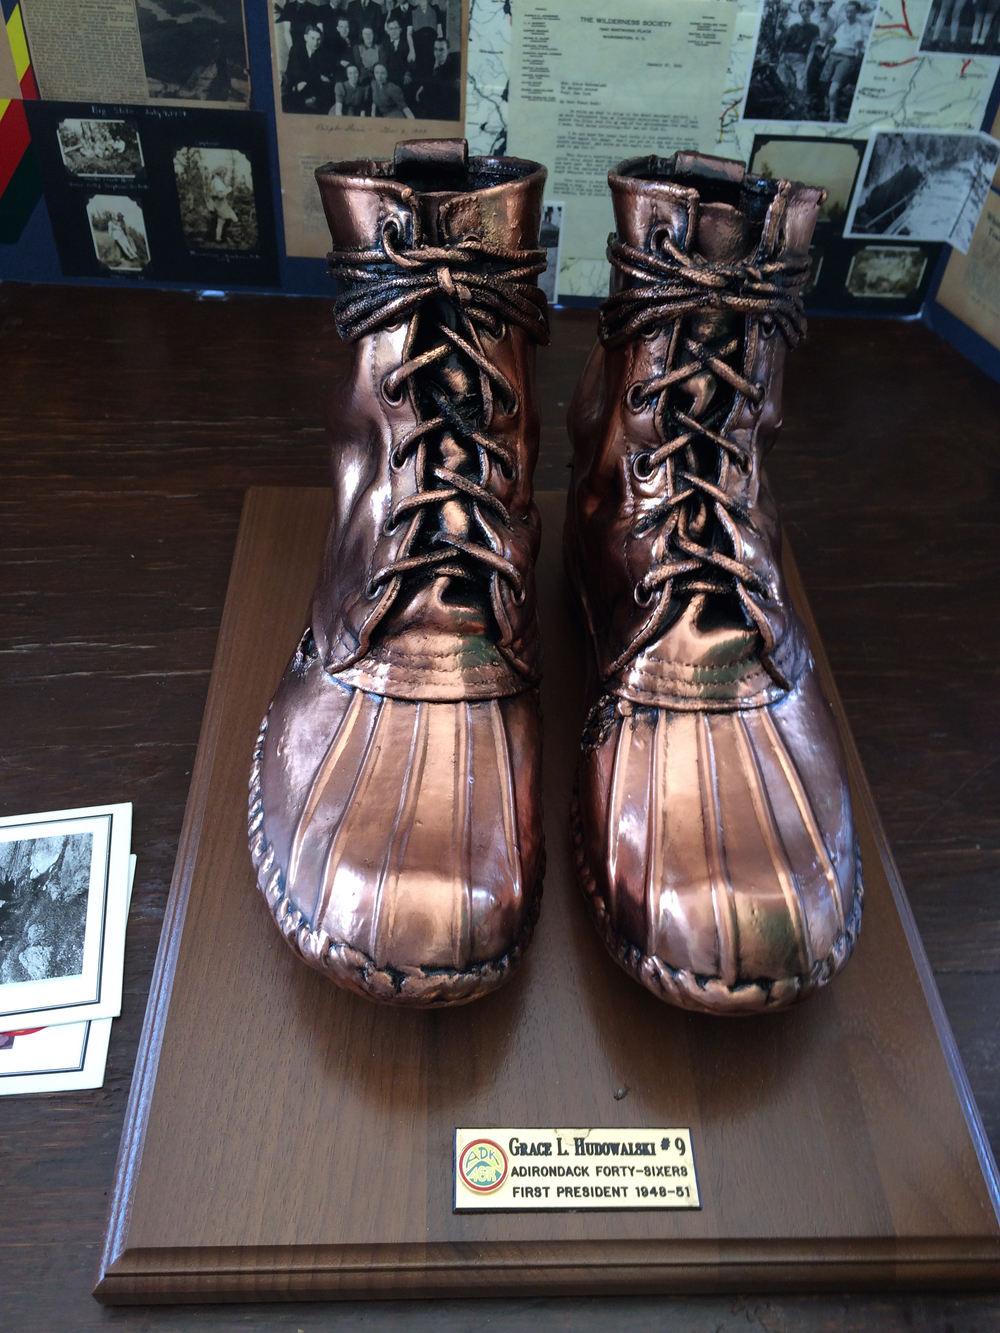 Grace Hudowalski's boots in bronze. Schroon Laker Collection. Copyright 2015. All Rights Reserved.